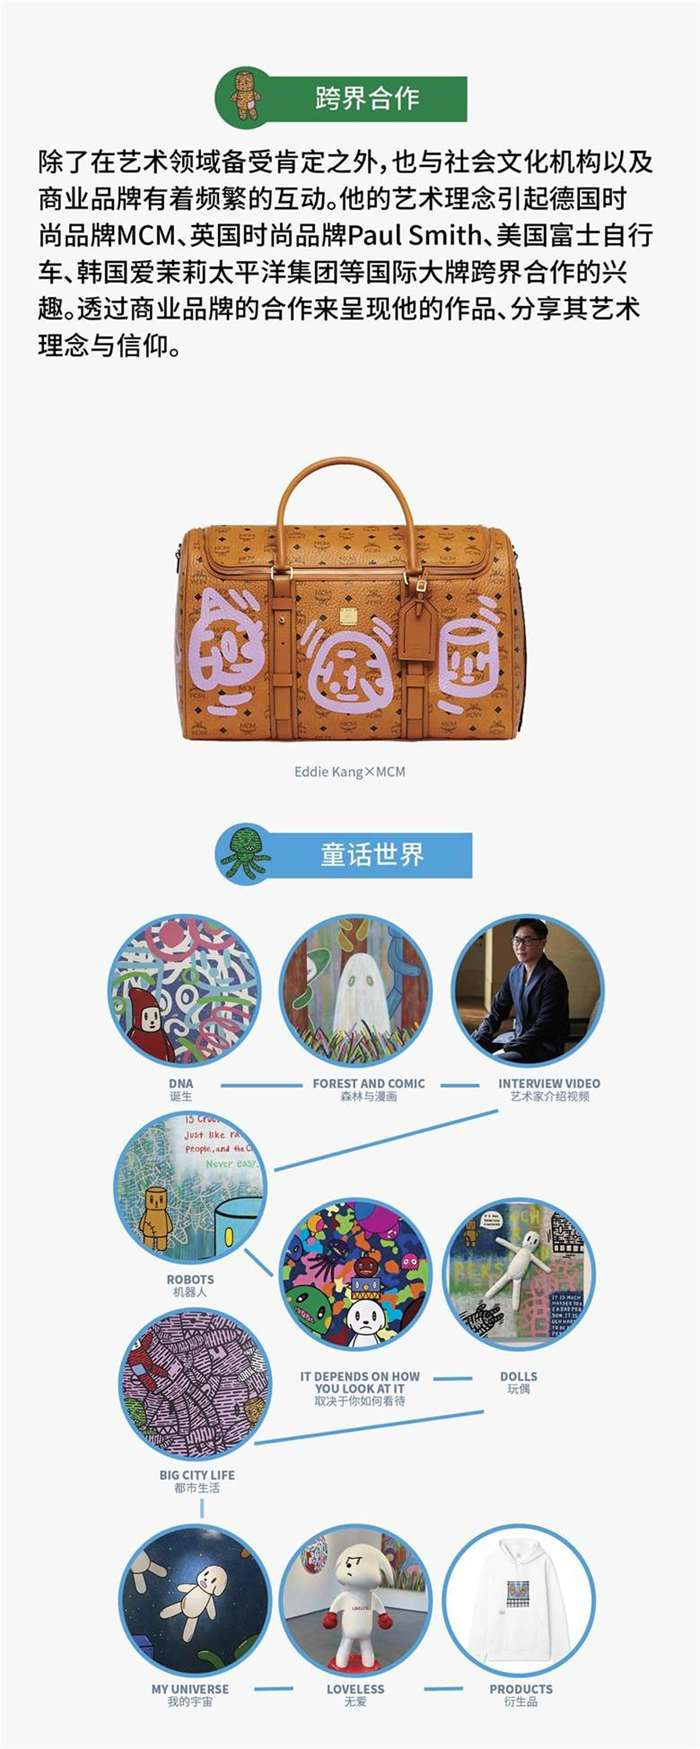 7-1姜锡铉童话人生长图_CASHART_KANG_LIFECYCLE_PROMOTION.jpg